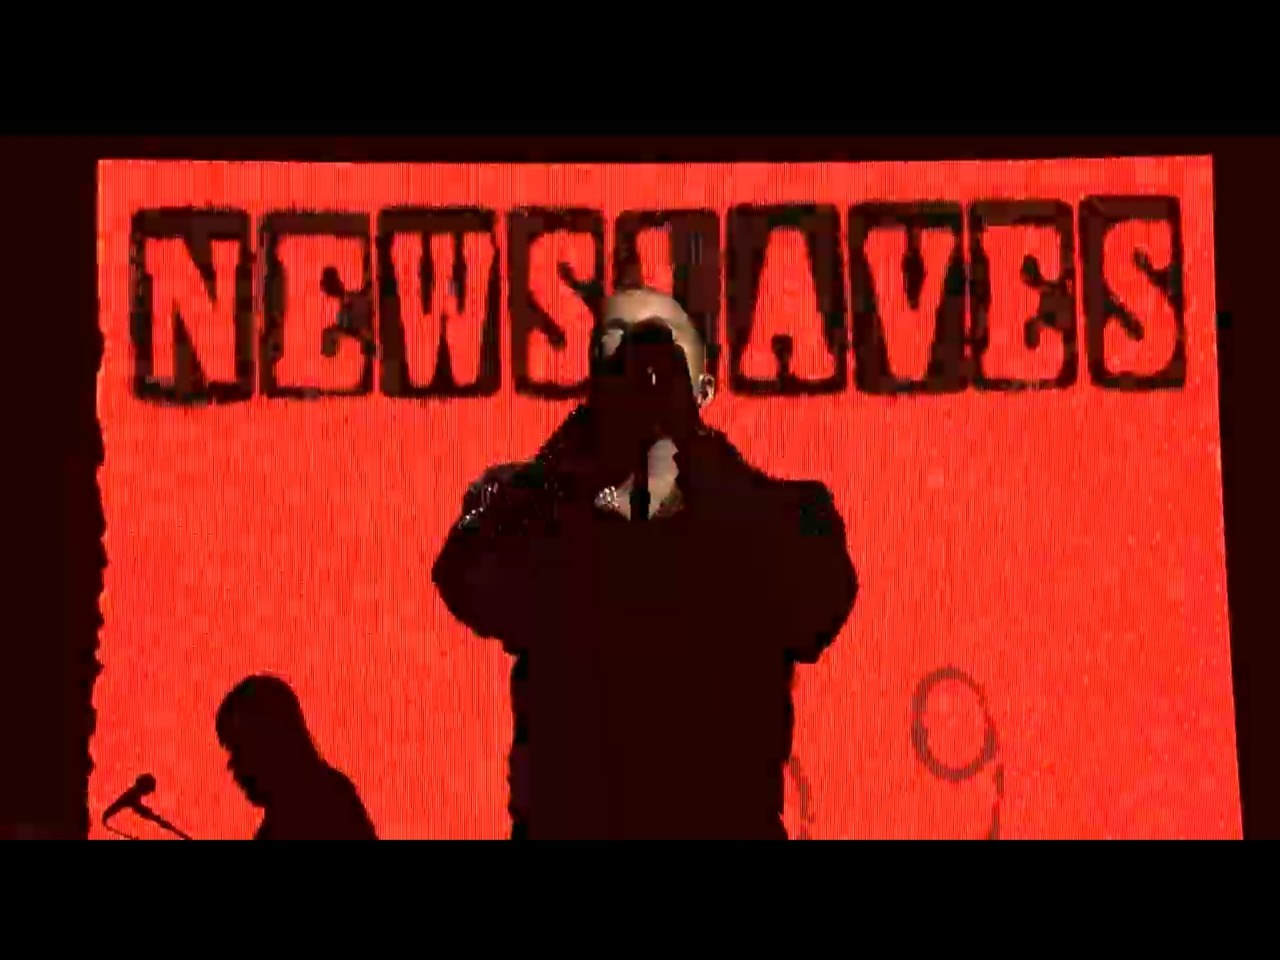 Kanye west video art screen shots from SNL